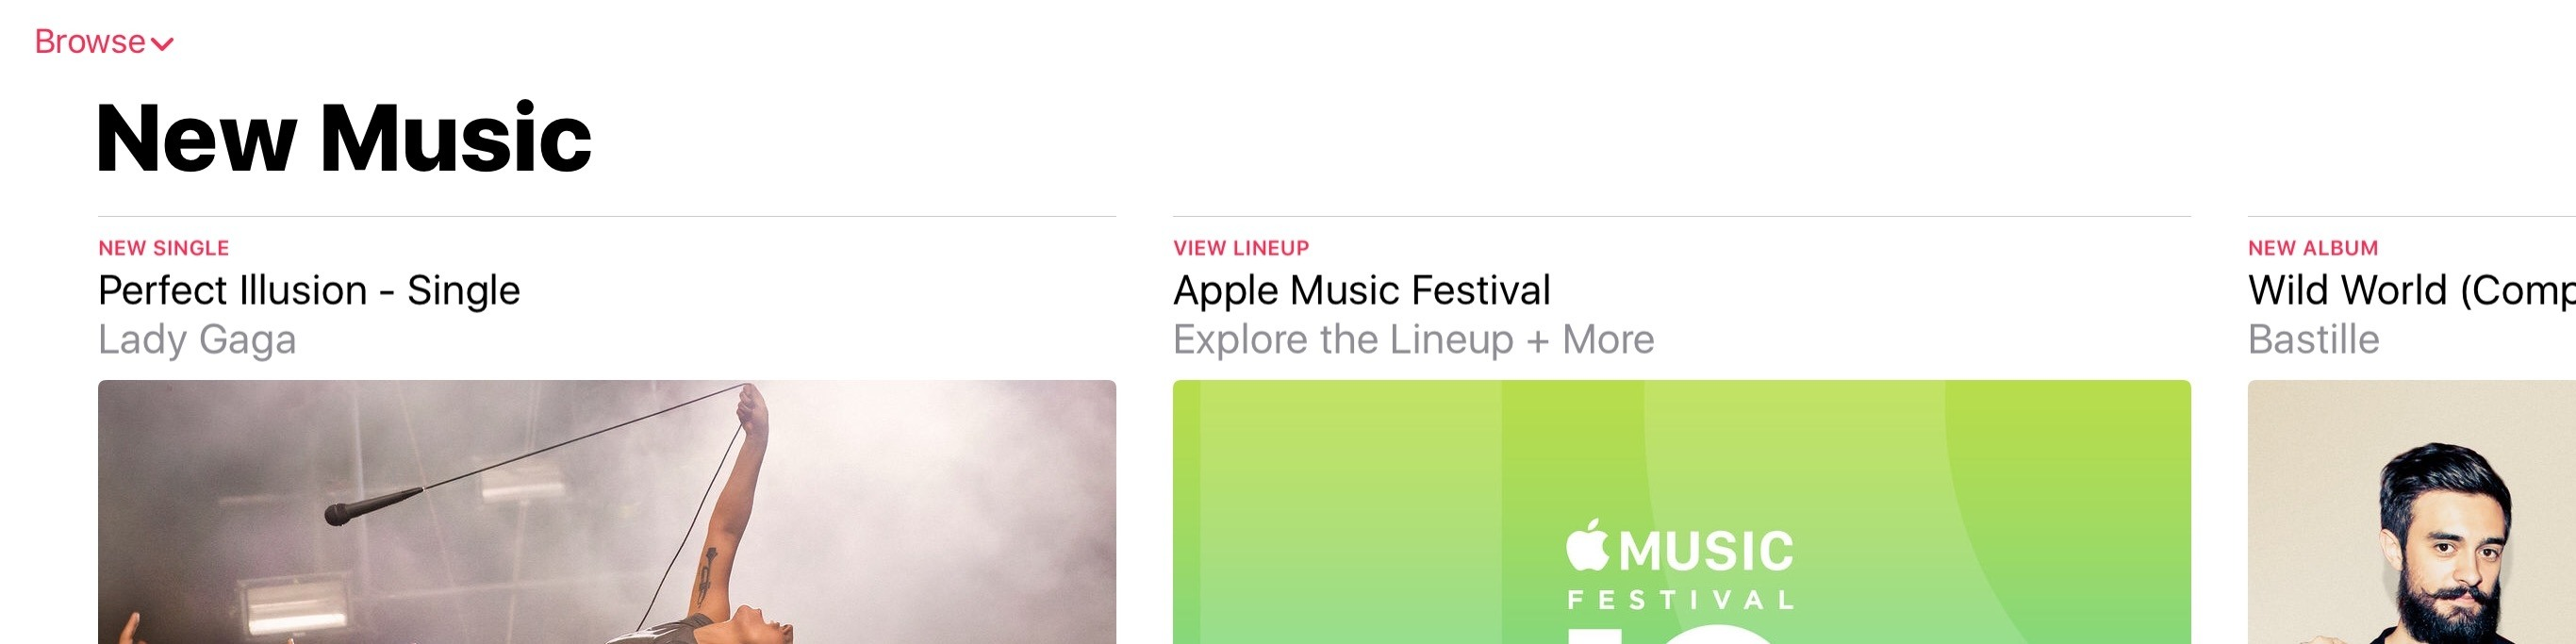 A new look for title bars in Apple Music.